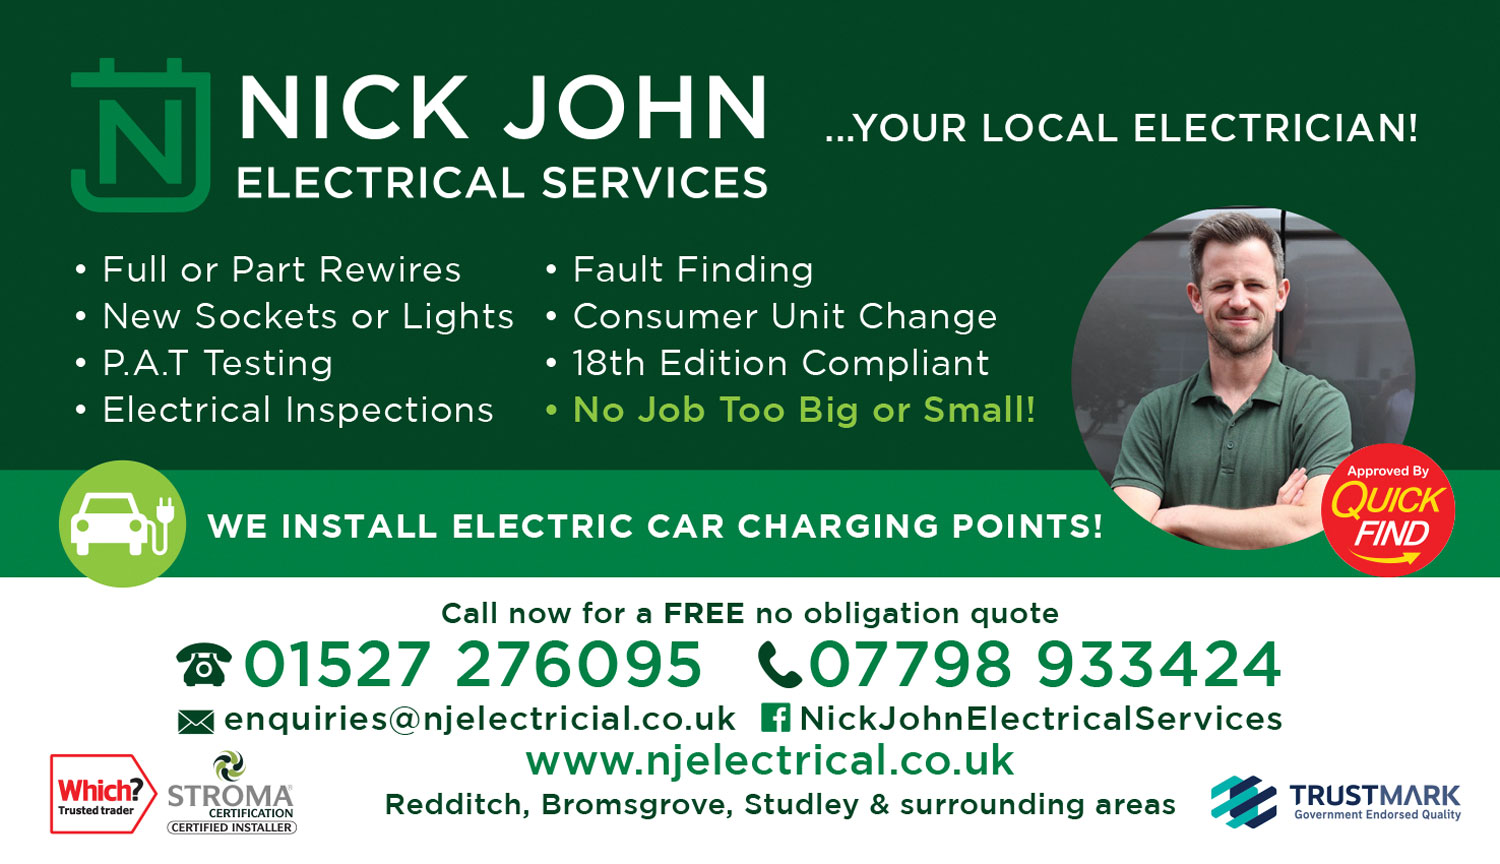 Nick John Electrical Services